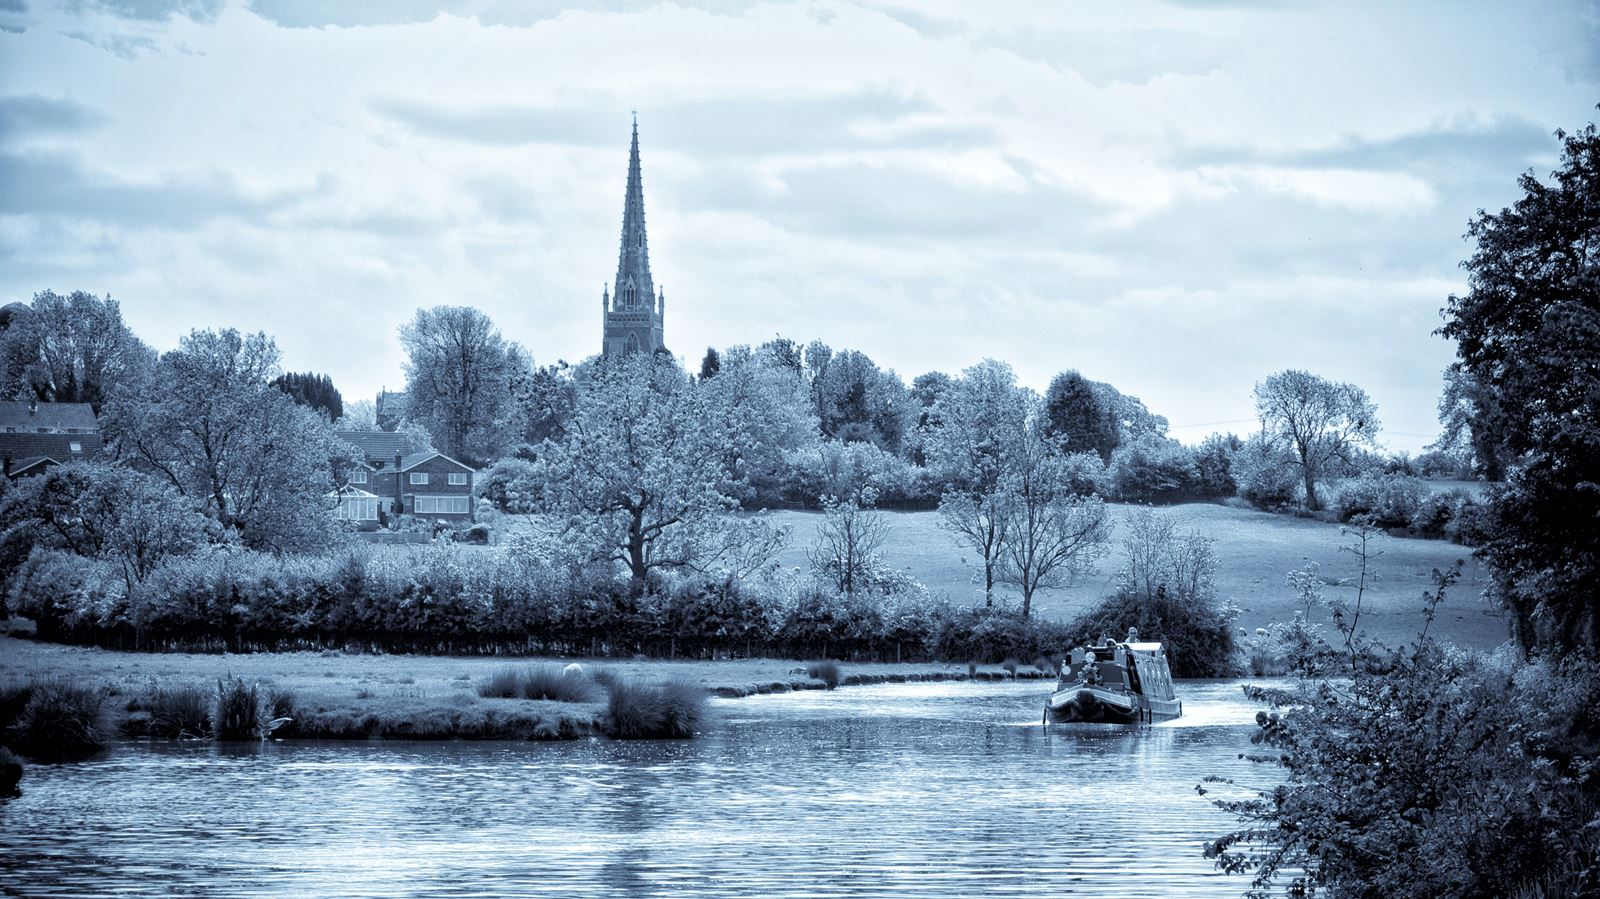 Braunston Church and the nortrh Oxford Canal